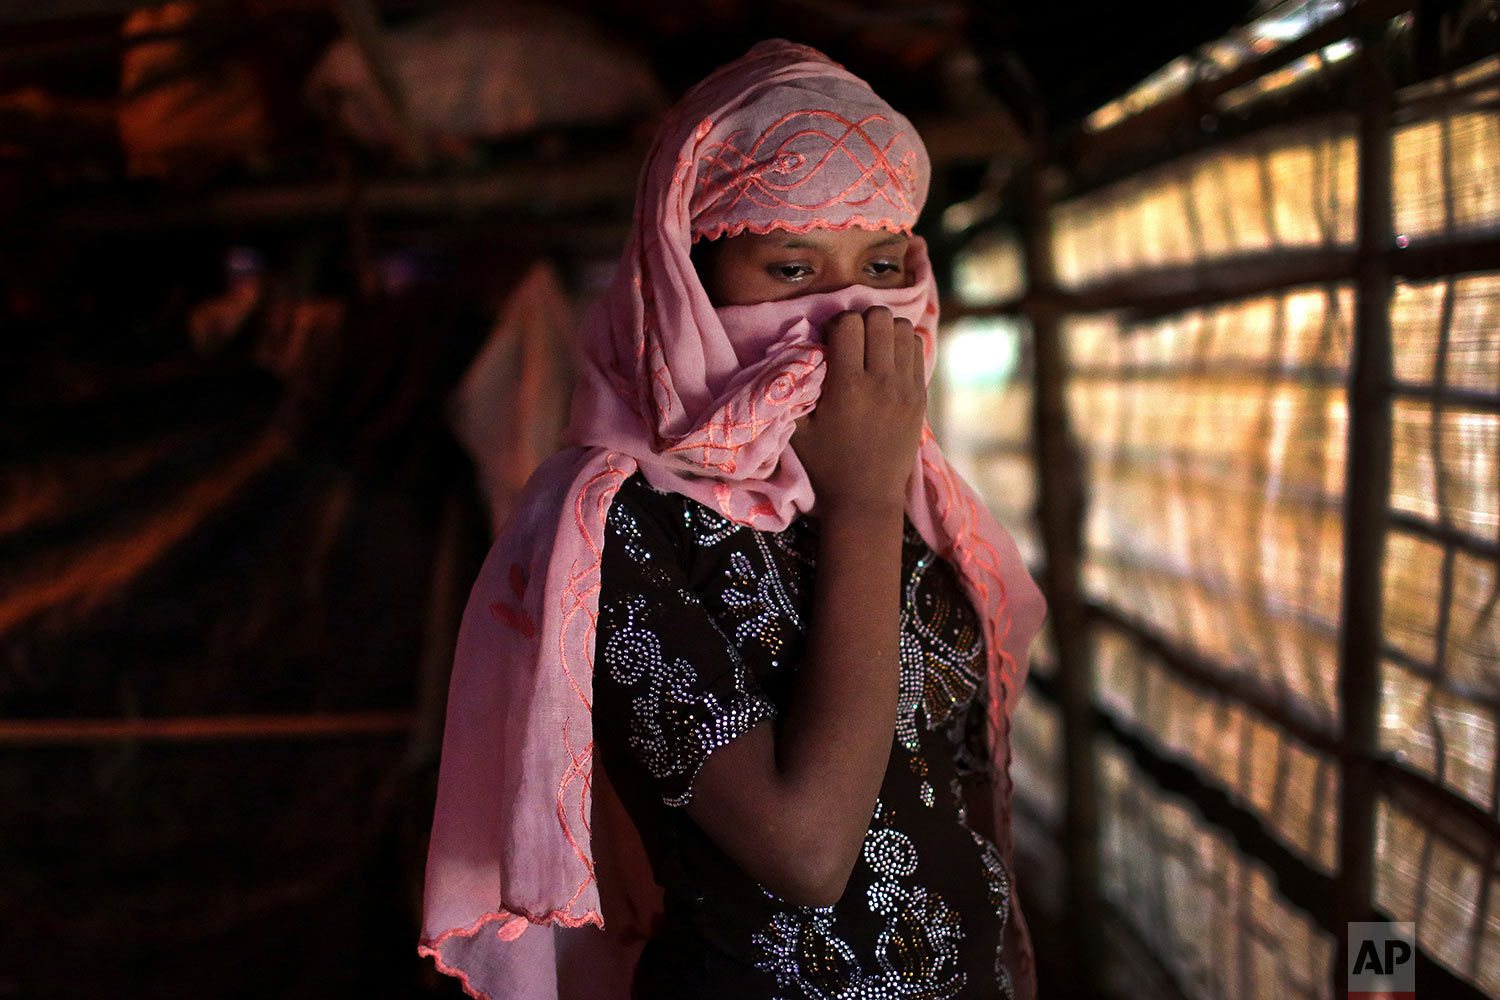 In this Sunday, Nov. 19, 2017, photo, R, 13, covers her face with her headscarf while being photographed in her tent in Kutupalong refugee camp in Bangladesh. The Associated Press has found that the rape of Rohingya women by Myanmar's security forces has been sweeping and methodical. The AP interviewed 29 women and girls who say they were raped by Myanmar's armed forces, and found distinct patterns in their accounts, their assailants' uniforms and the details of the rapes themselves. The most common attack involved groups of soldiers storming into a house, beating any children inside and then beating and gang raping the women. (AP Photo/Wong Maye-E)